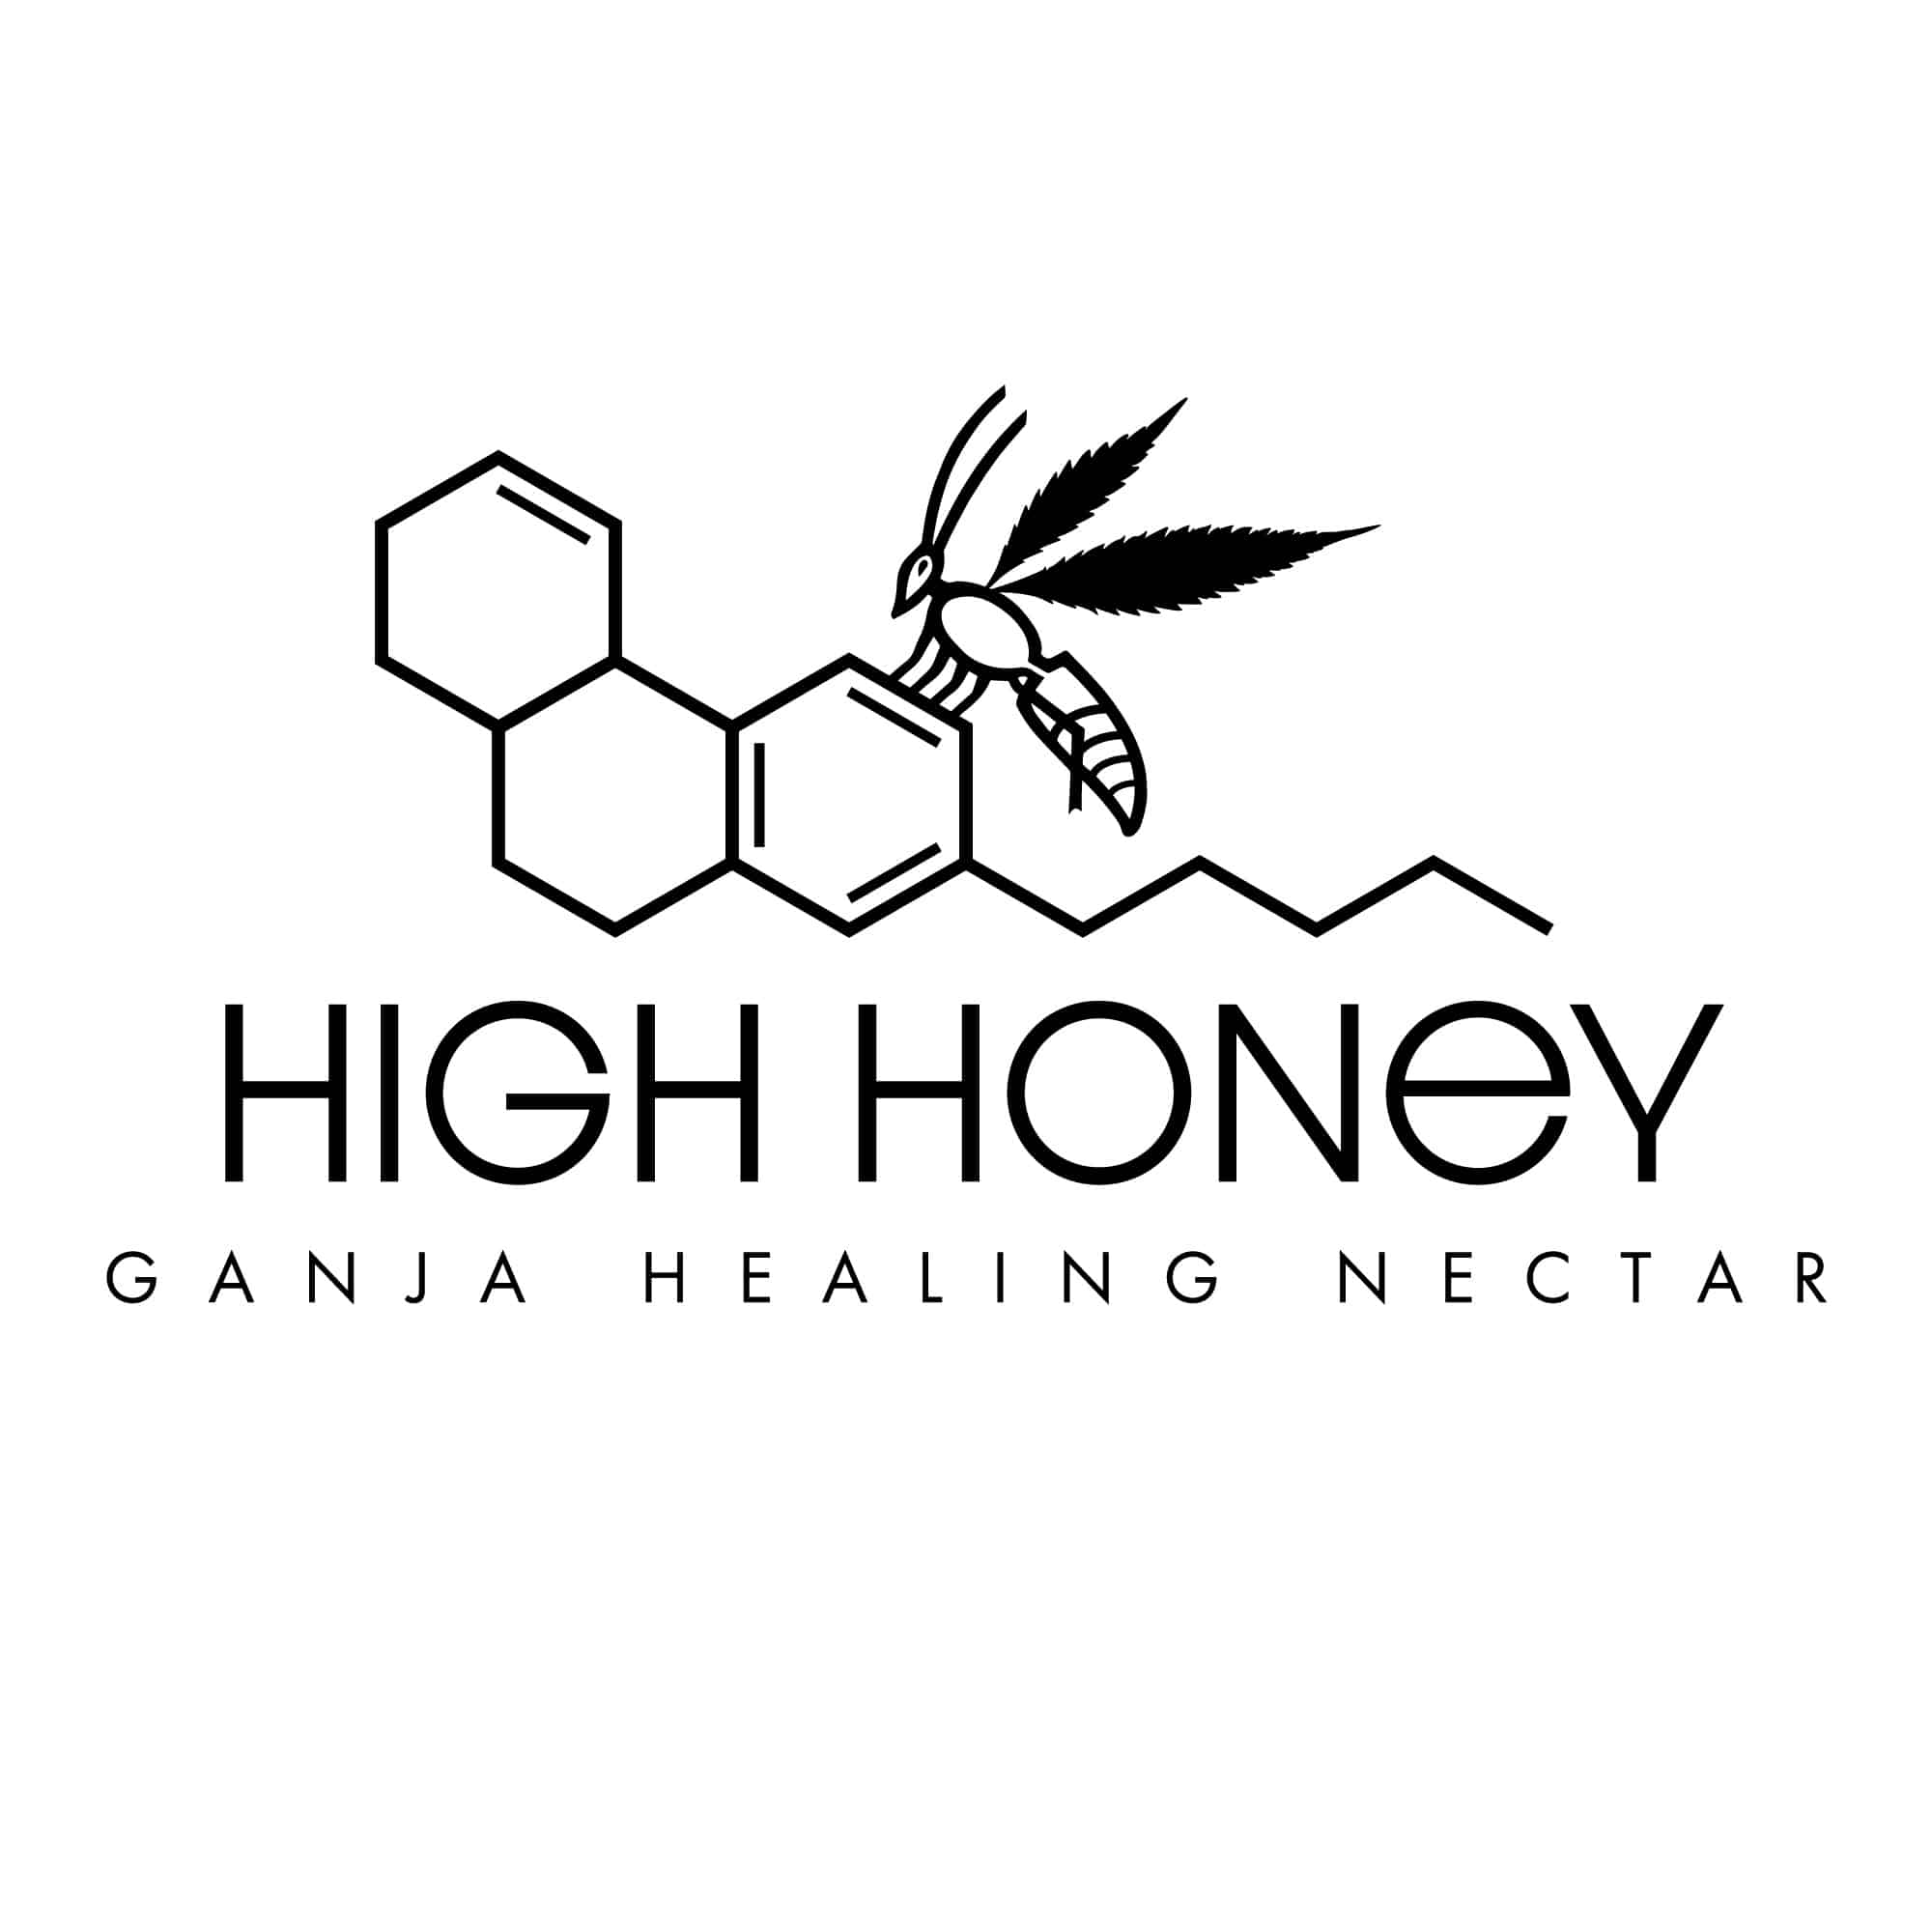 Logo Design for High Honey Cannabis Company by UziMedia